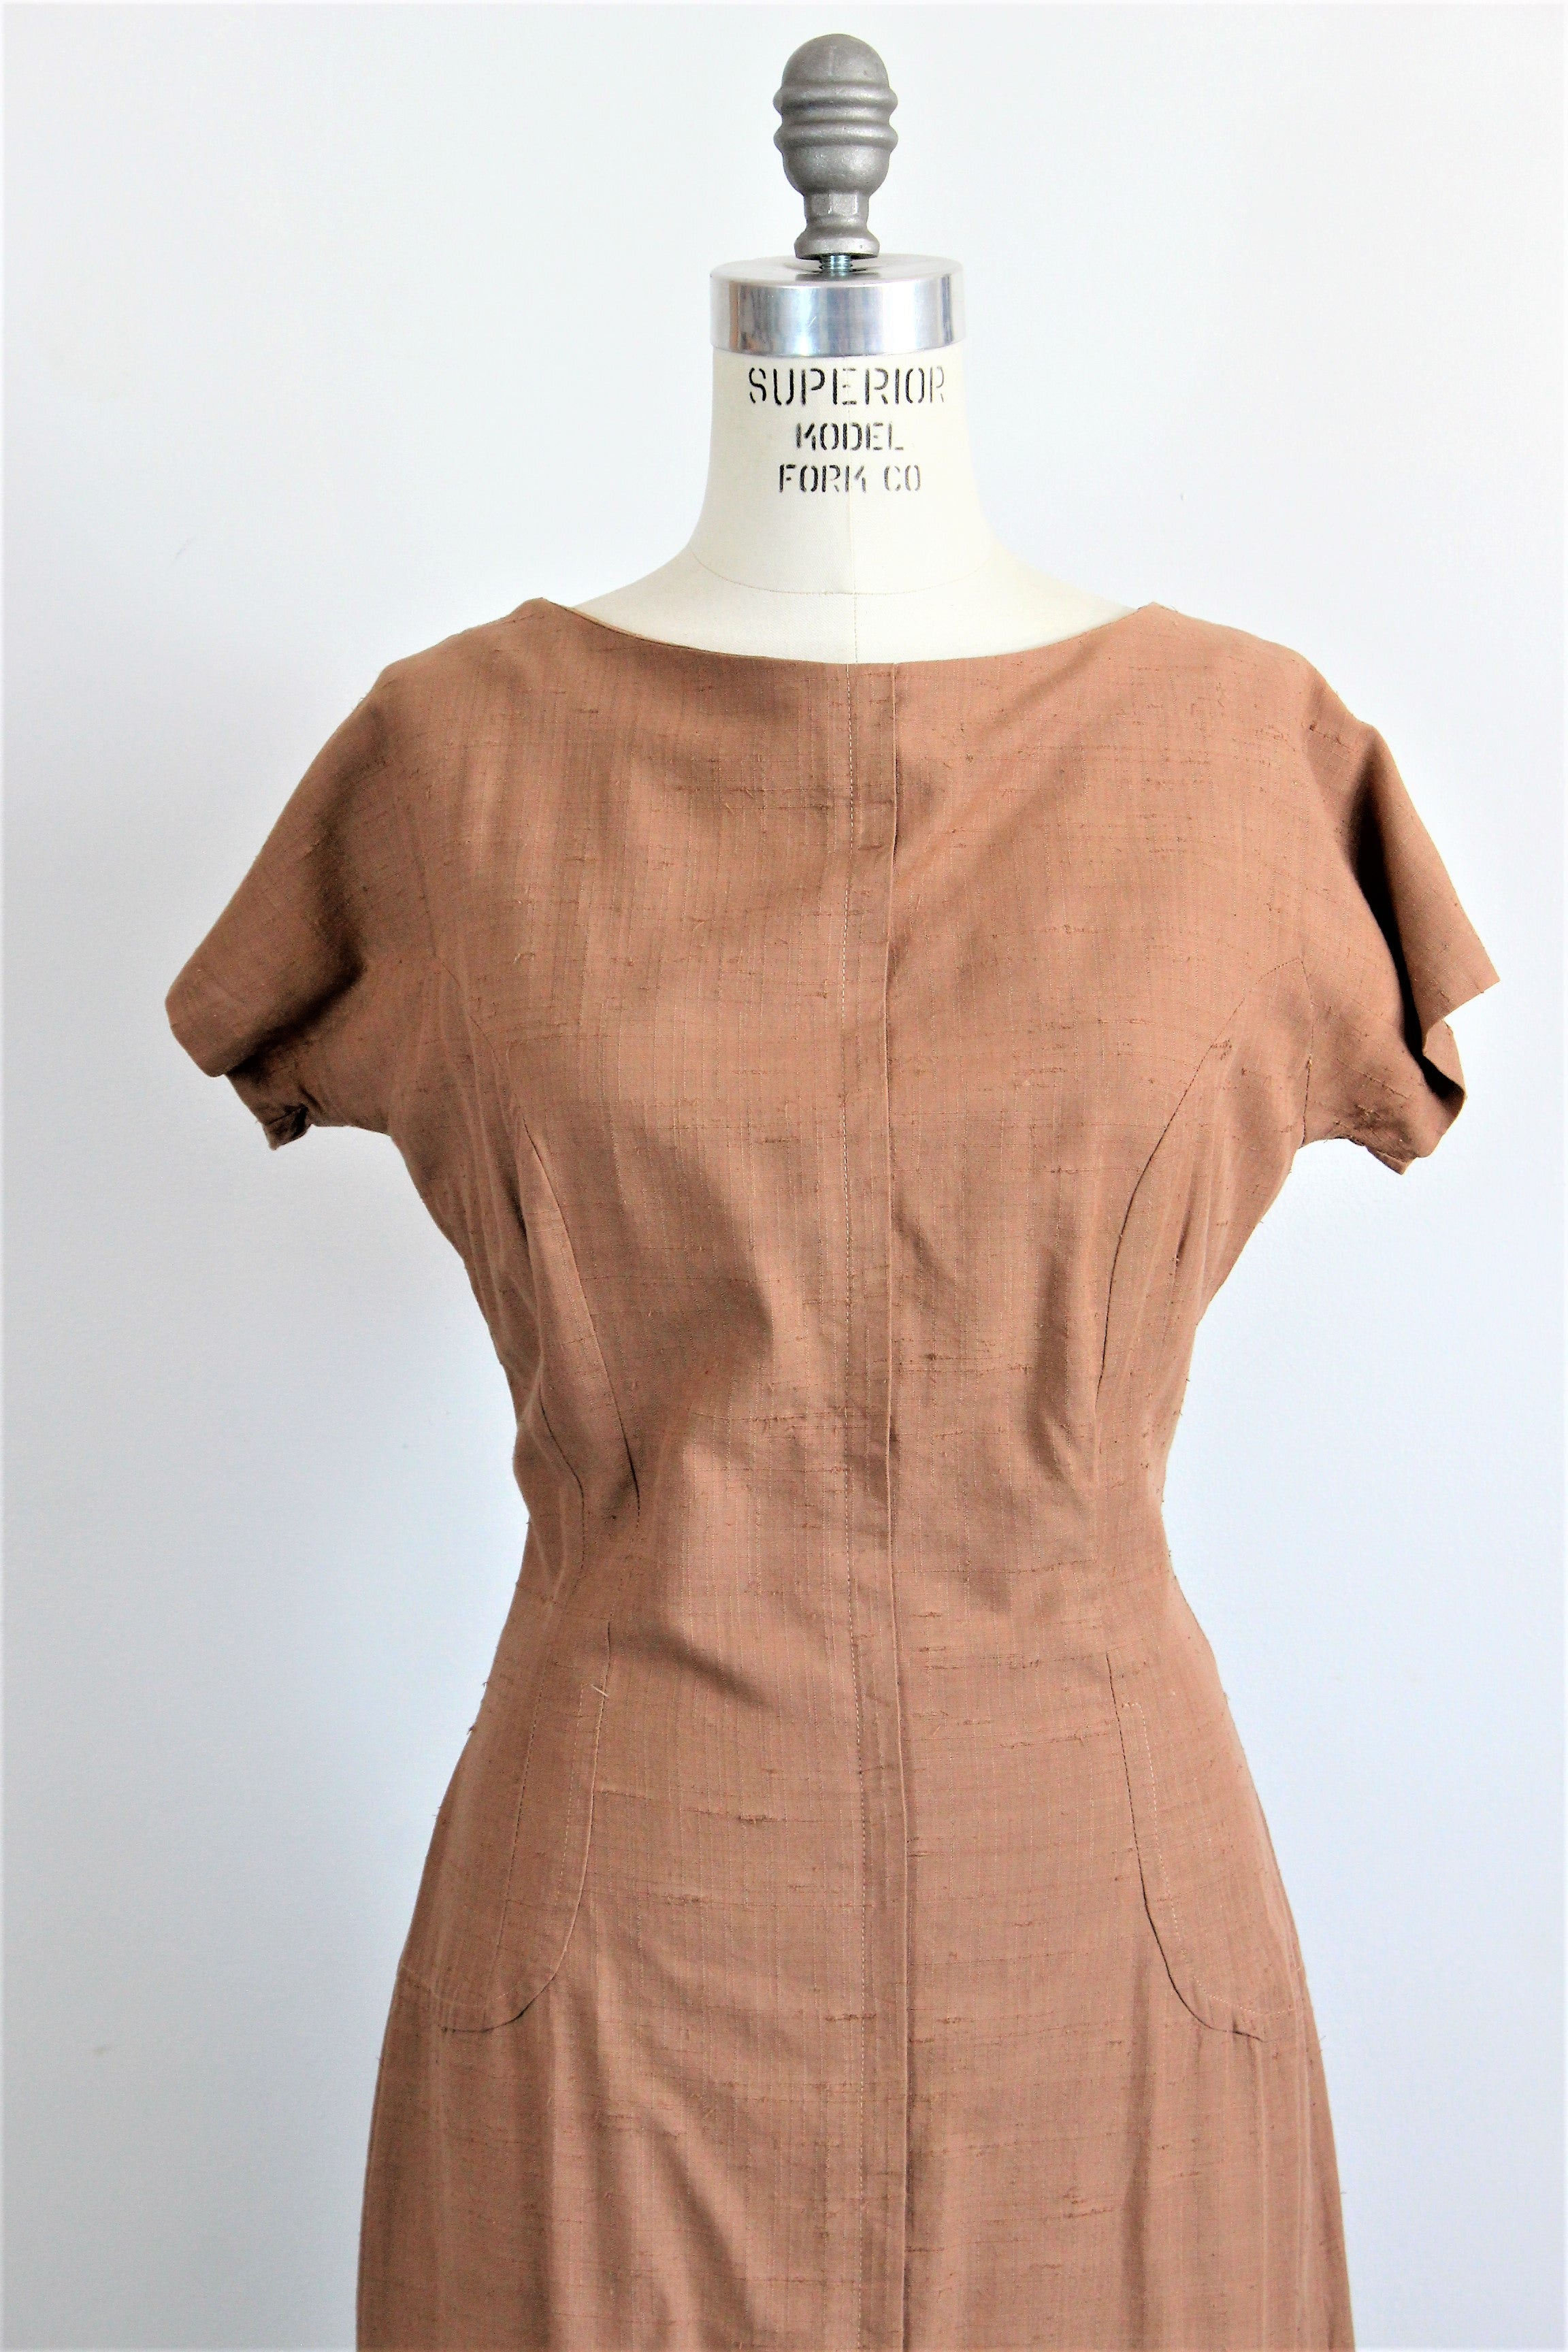 Vintage 1950s Brown Day Dress in Milk Chocolate Brown from Tall Fashions of California By Martin Berens